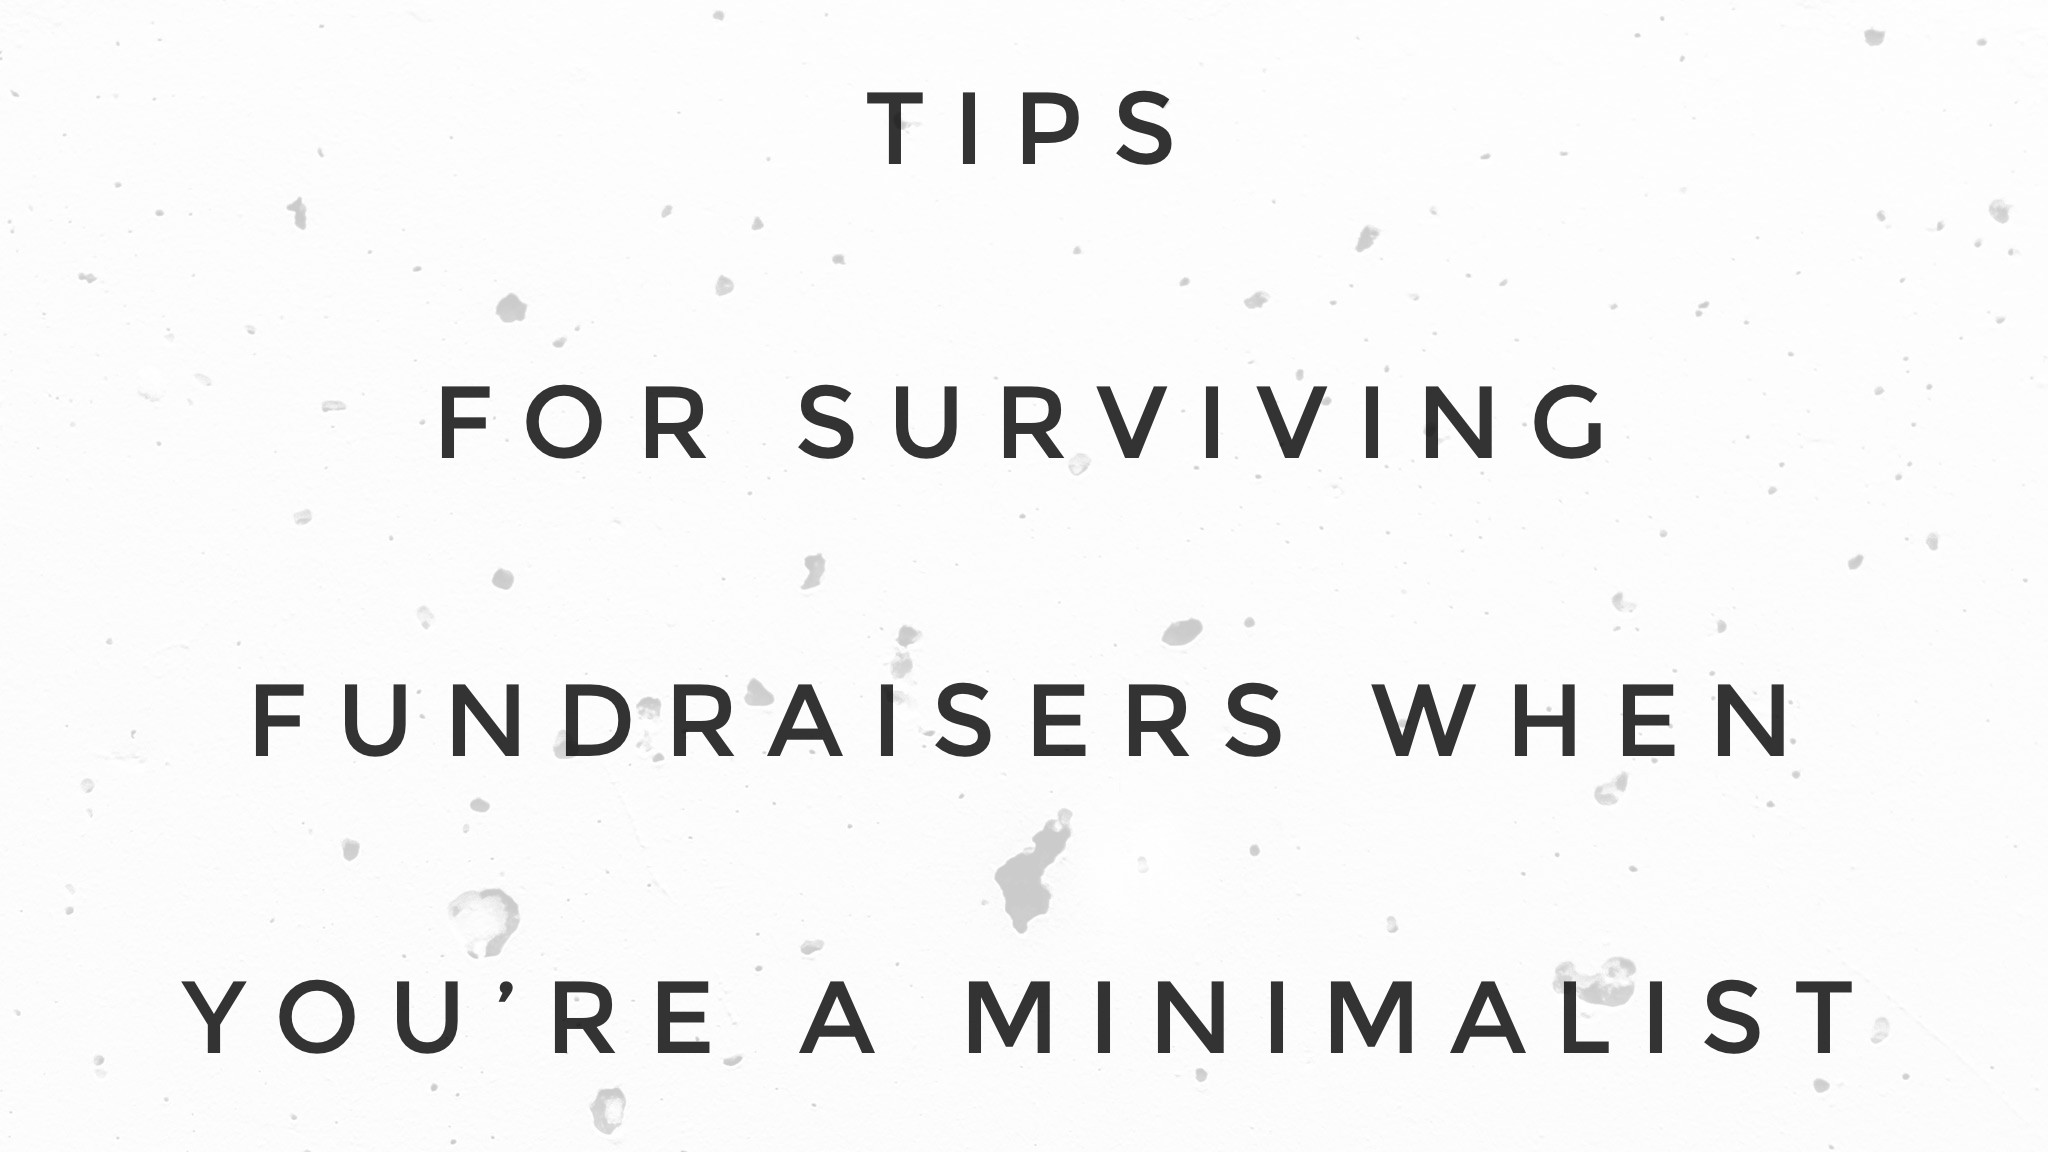 Tips for surviving fundraisers when you're a minimalist